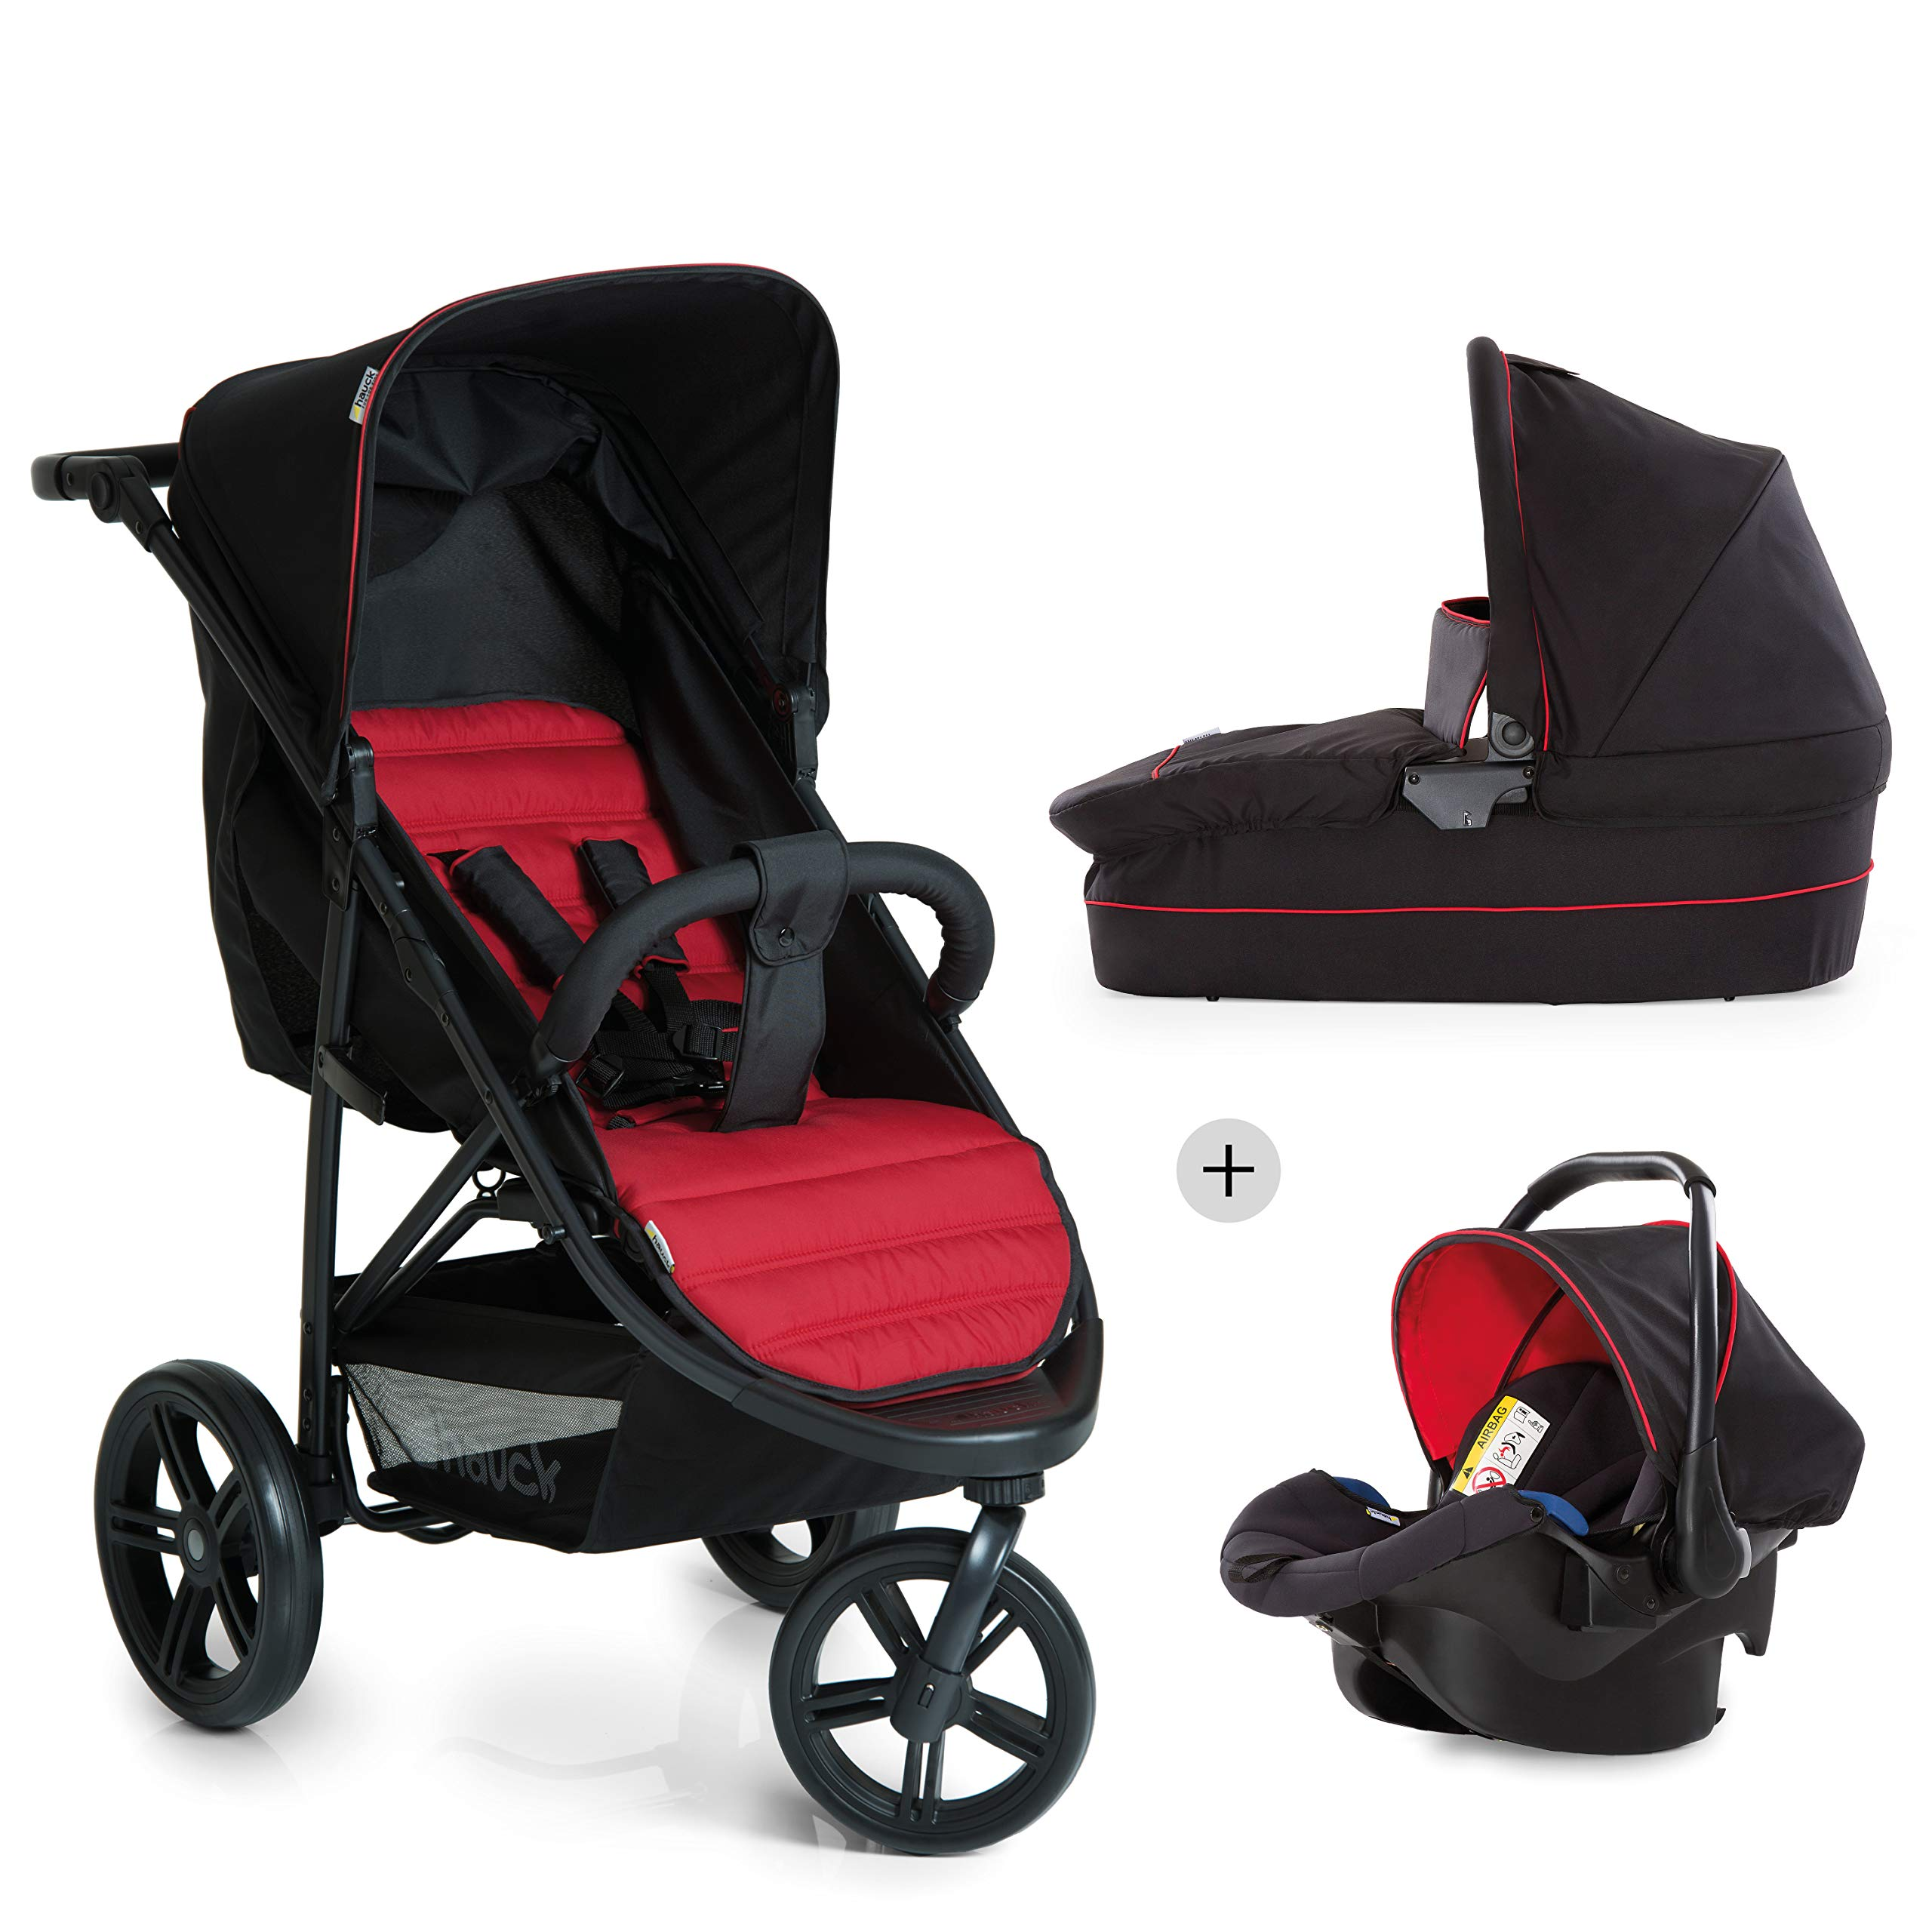 Hauck Rapid 3 Plus Trio Set - Carro deportivo 0 meses hasta 25 kg, coche